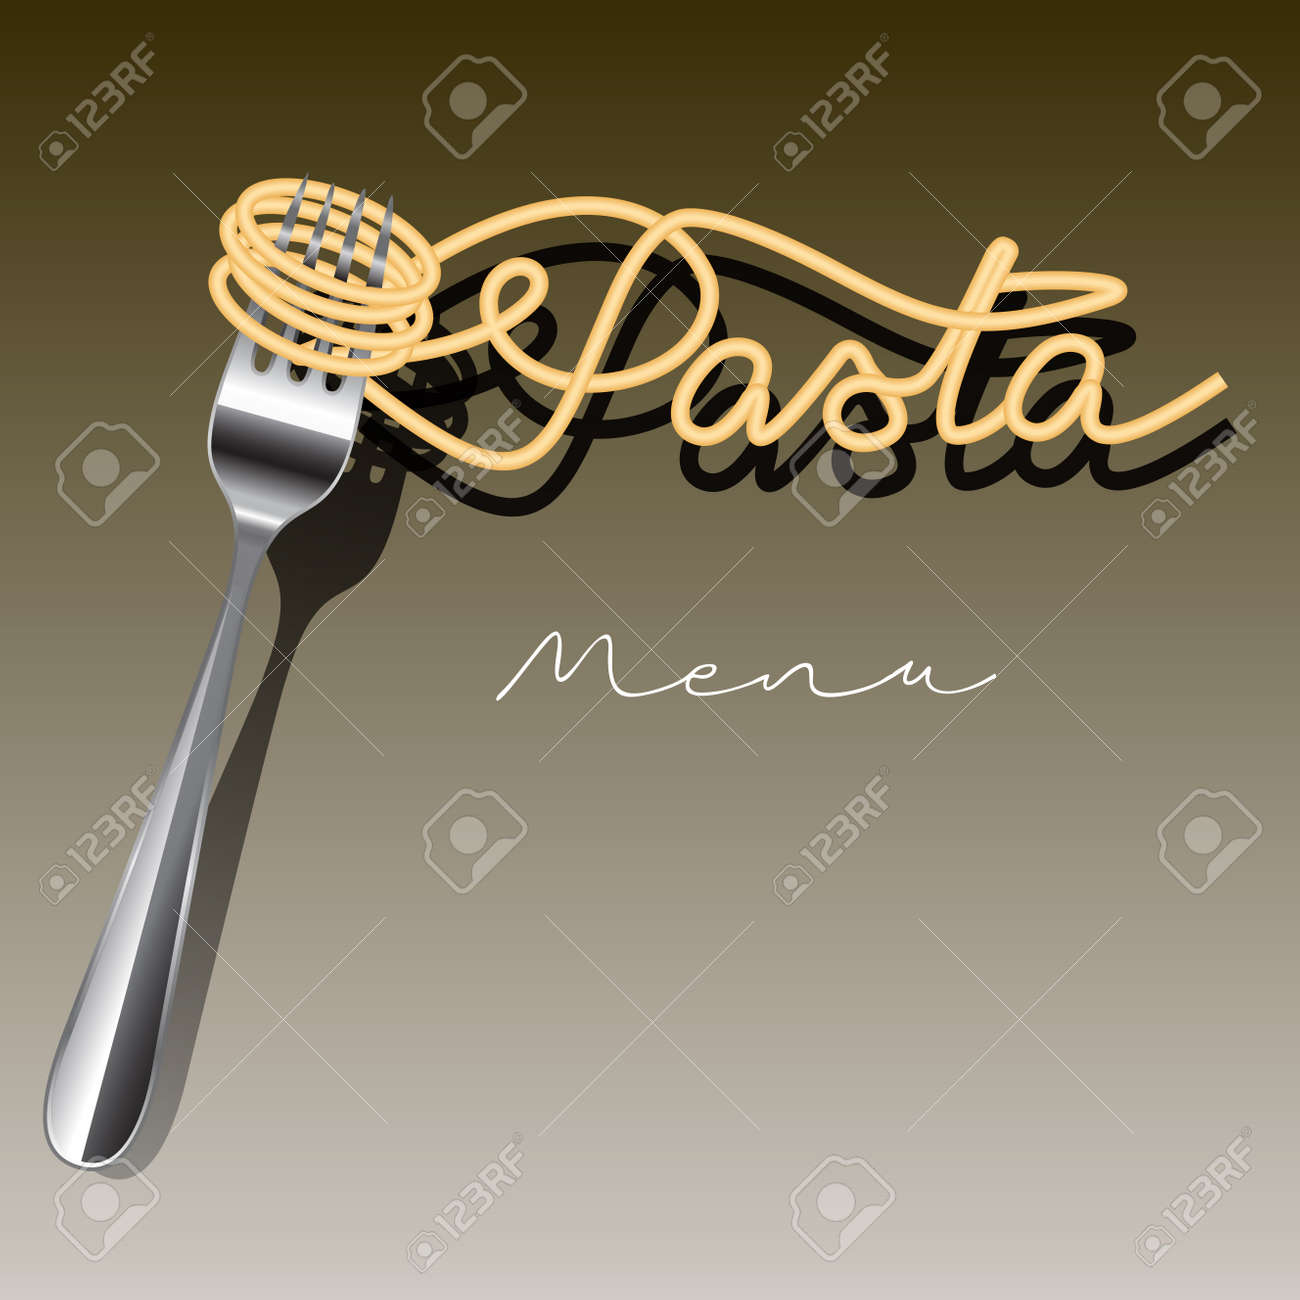 Pasta menu template isolated on background. Vector illustration - 47683877